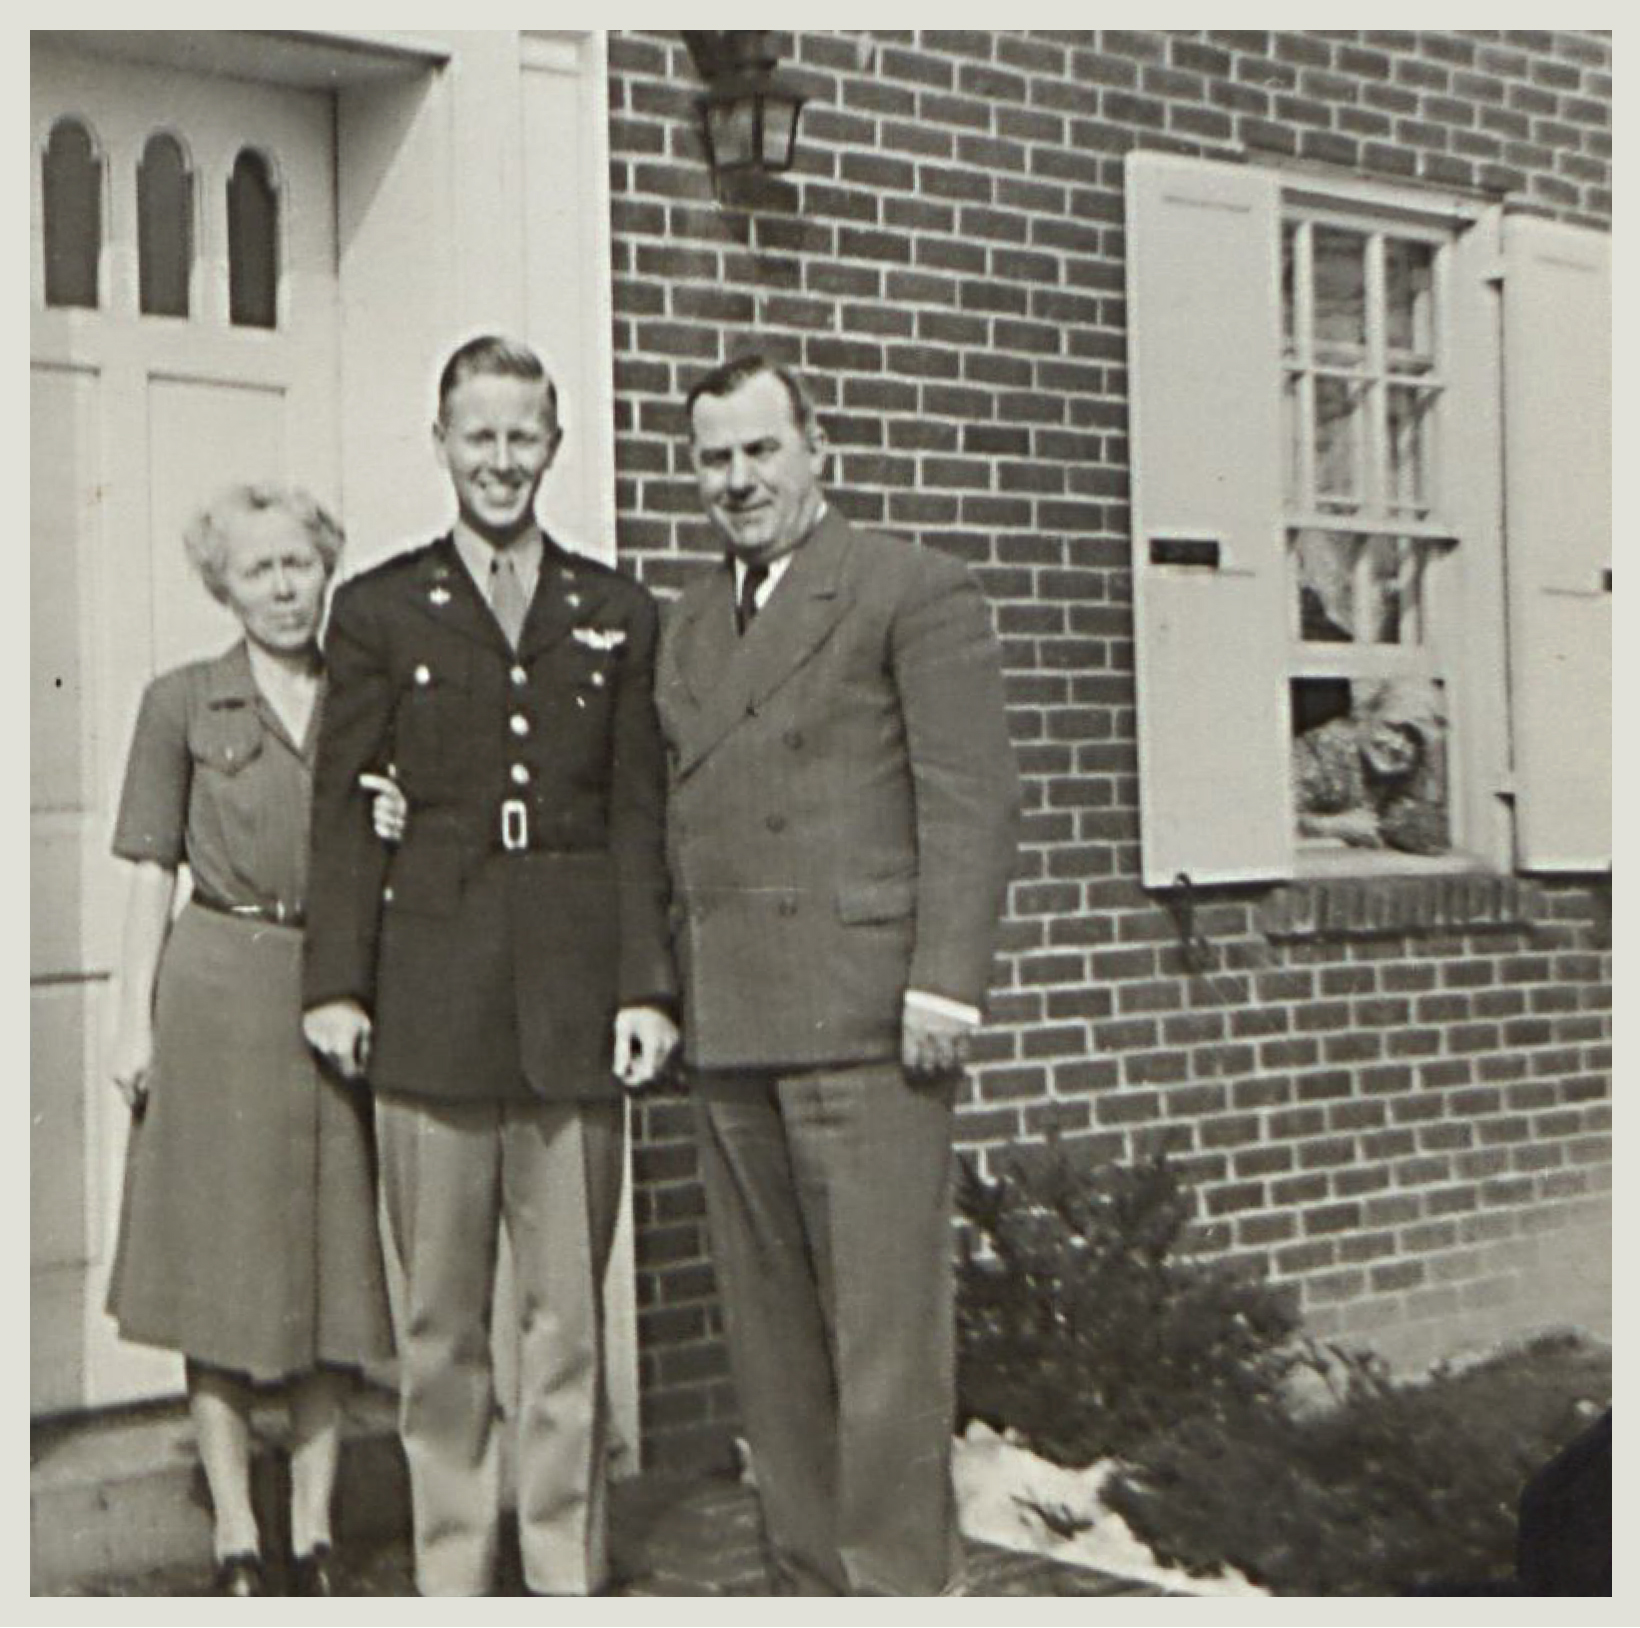 Ralph L. Minker Jr with his parents (and grandmother Jones looking out of the window), Wilmington,  DE circa 1944. (photo used with permission from Delaware Historical Society Collection)